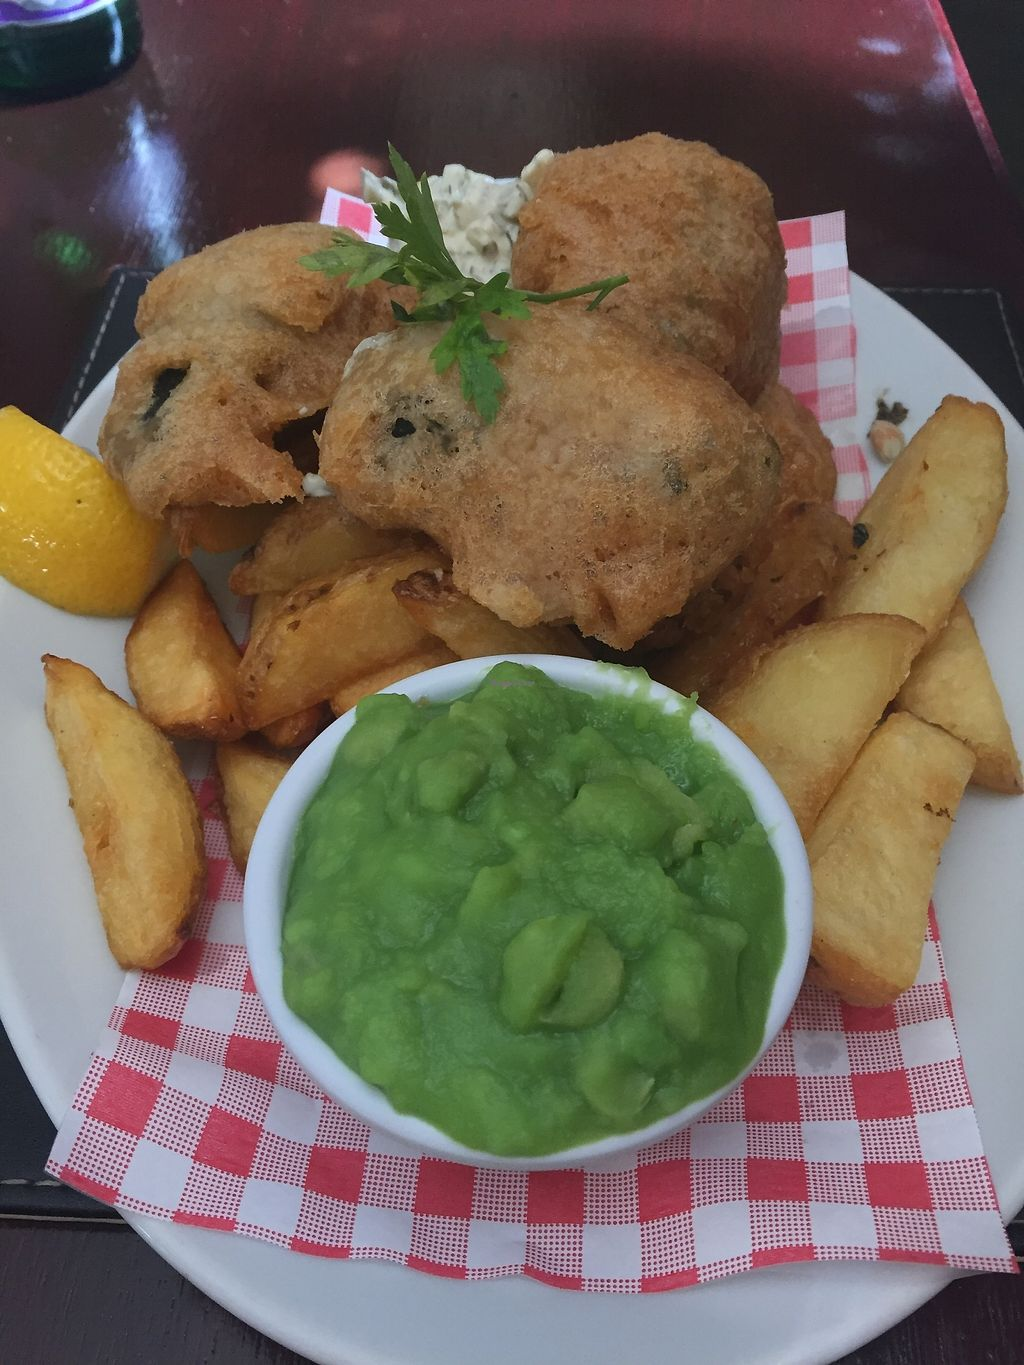 """Photo of The Castle Inn   by <a href=""""/members/profile/Tastetesters"""">Tastetesters</a> <br/>Fish and chips as delicious as any fishy version. Amazing! <br/> September 19, 2017  - <a href='/contact/abuse/image/88054/306140'>Report</a>"""